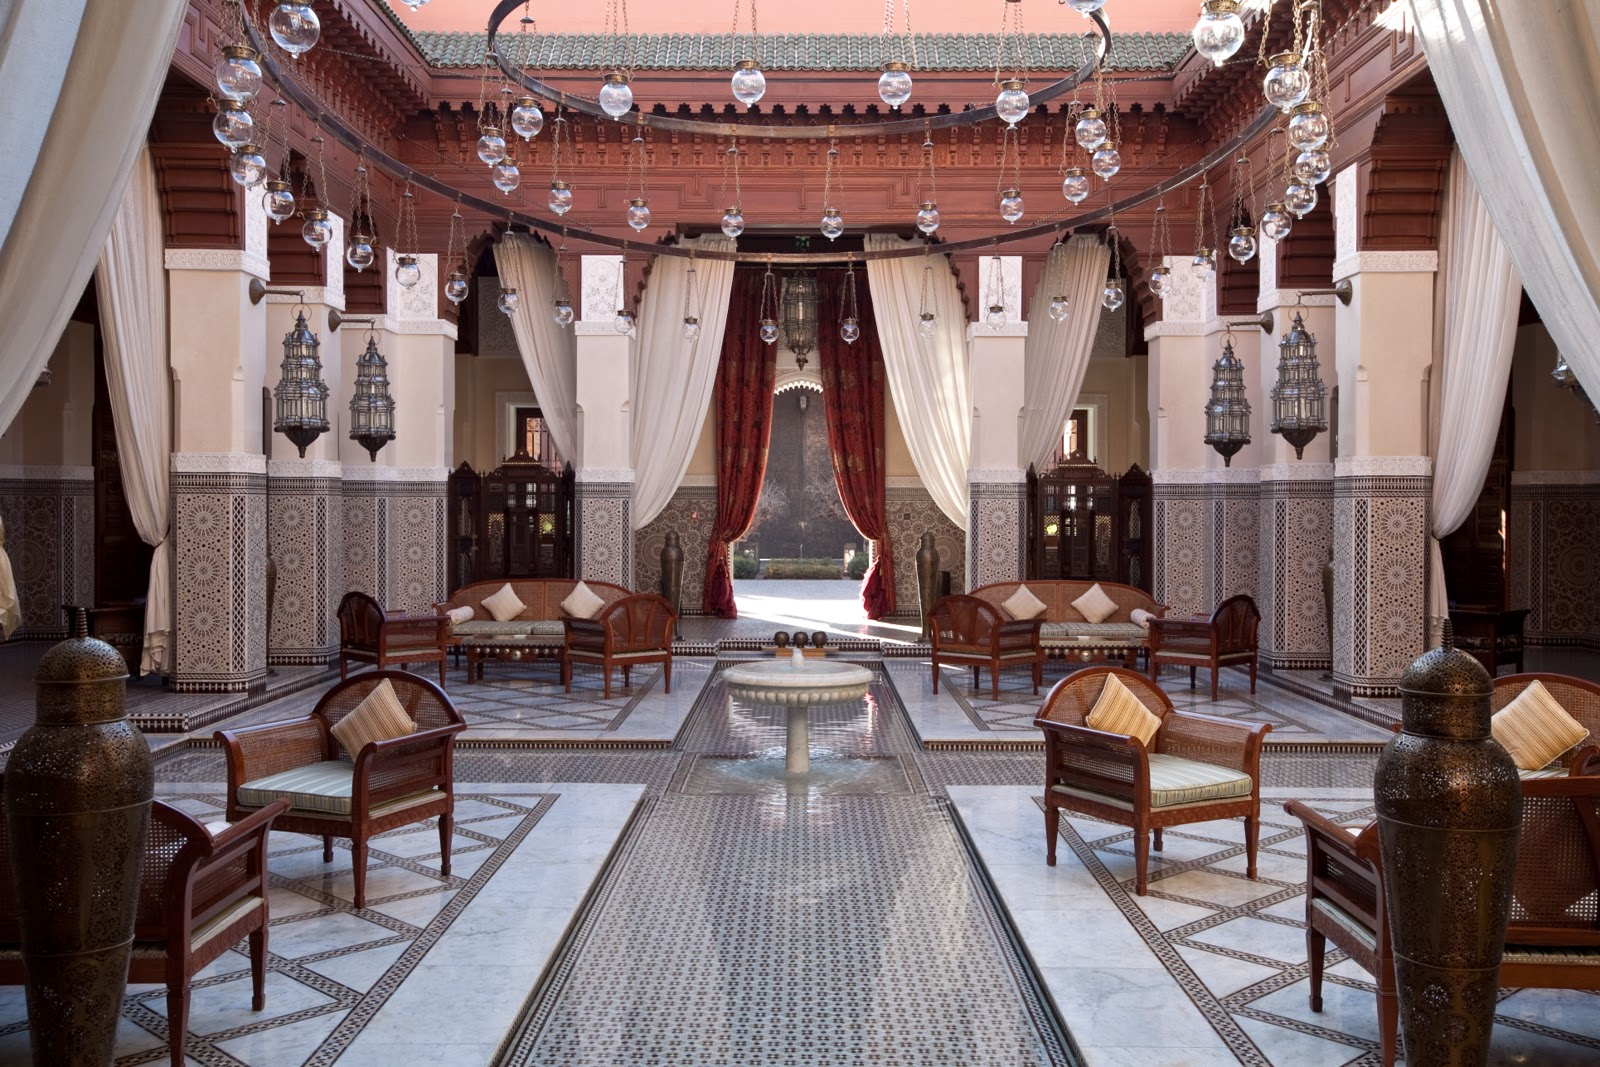 Alexandra d foster destinations perfected marrakech for Hotel design marrakech